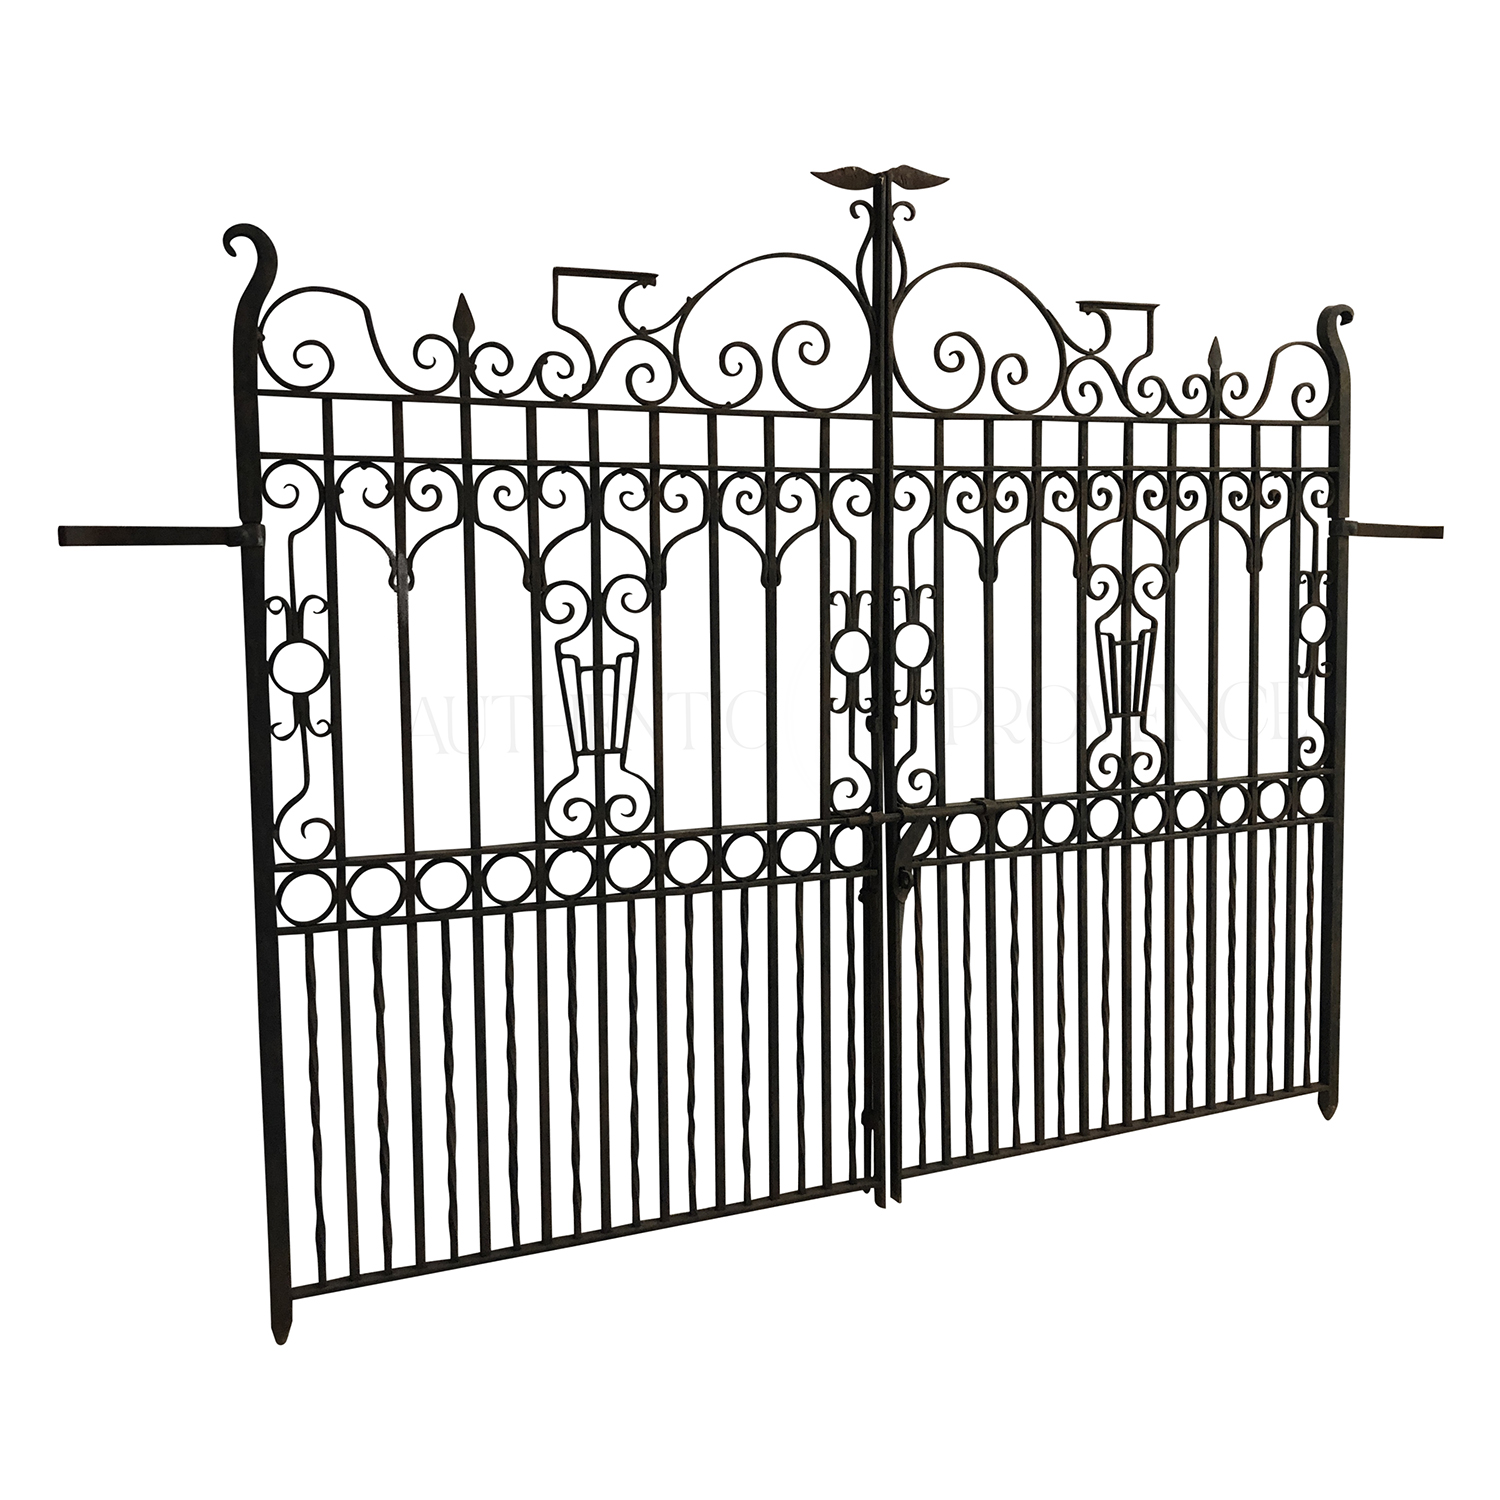 A heavy double sided wrought iron entrance gate from the early 19th century with the typical French décor